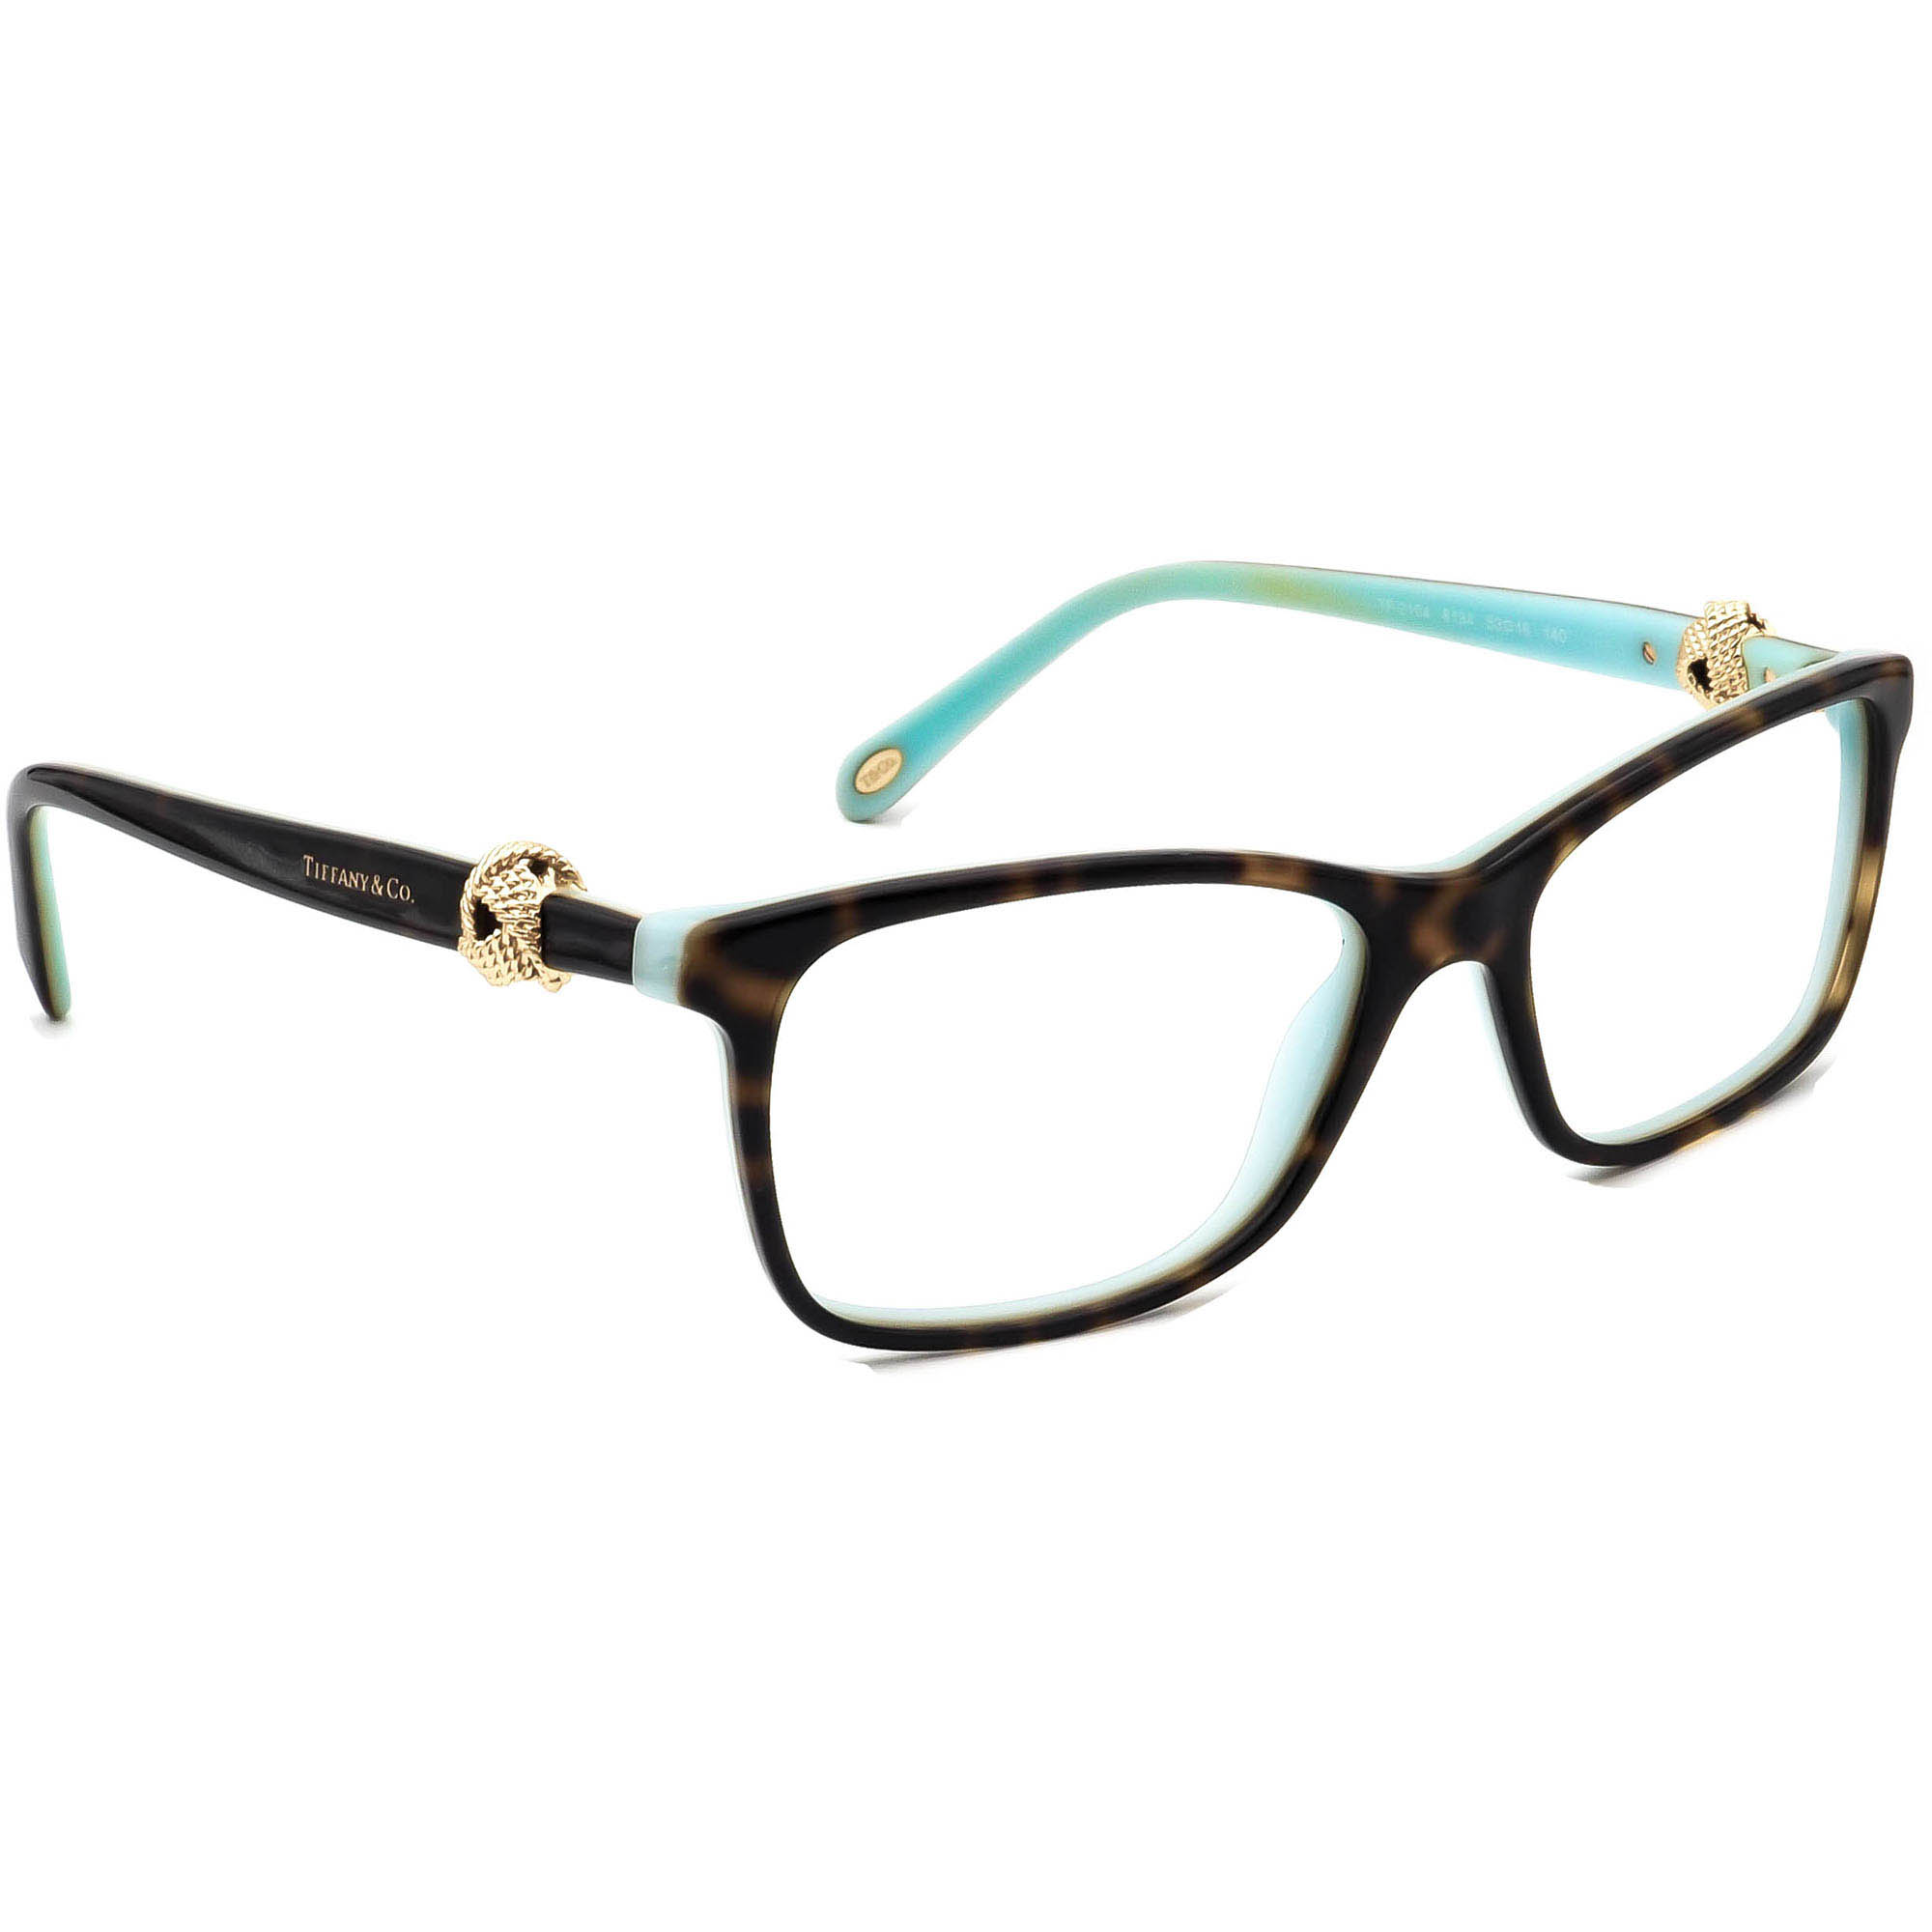 Tiffany & Co. TF 2104 8134 Eyeglasses